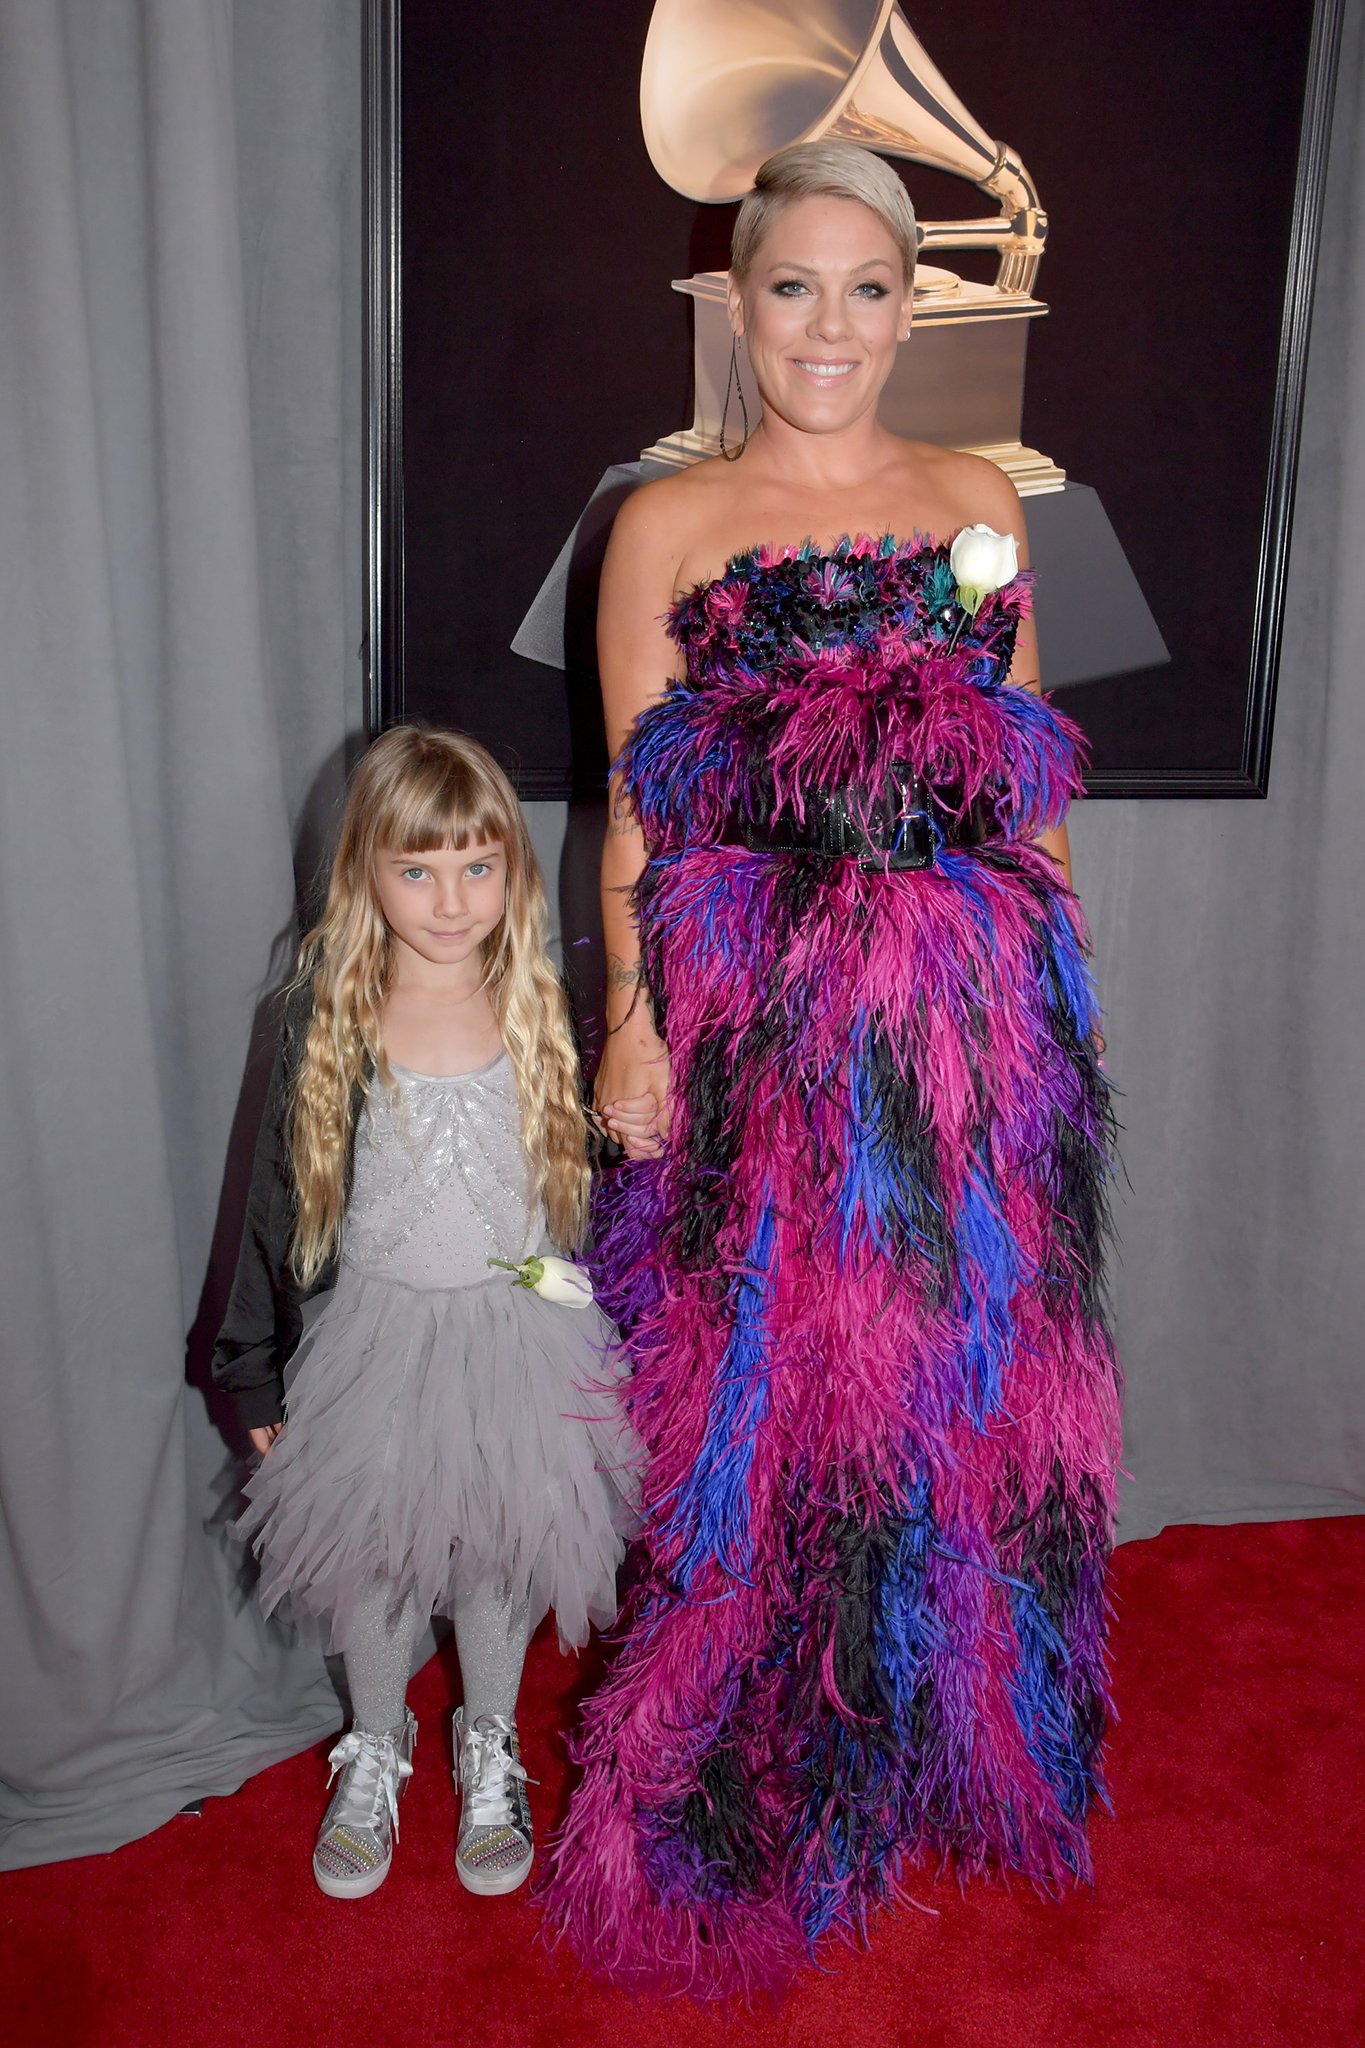 Willow Sage Hart and recording artist Pink attend the 60th Annual GRAMMY Awards at Madison Square Garden on January 28, 2018 in New York City.